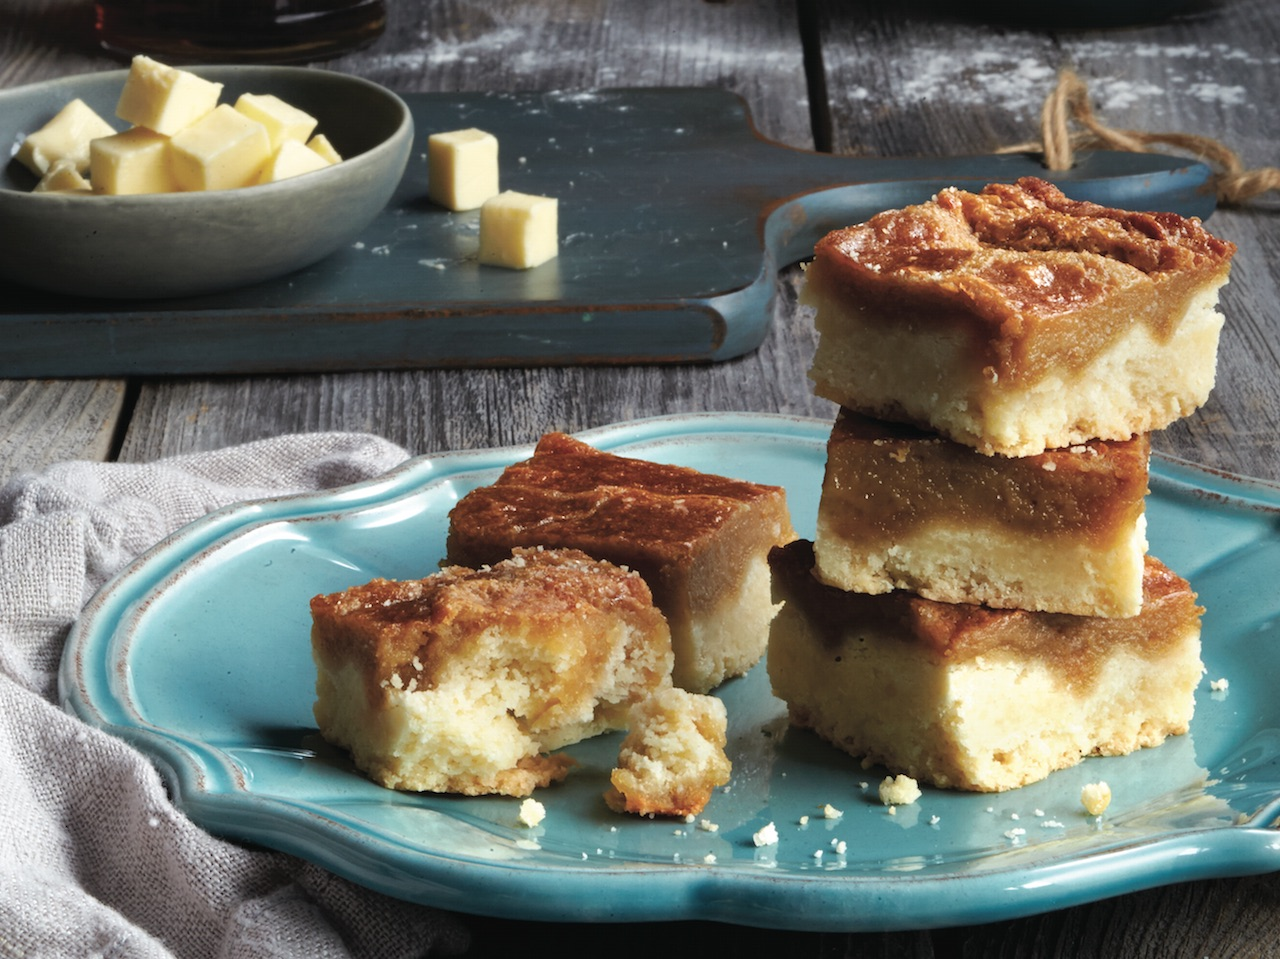 maple squares and cubed butter